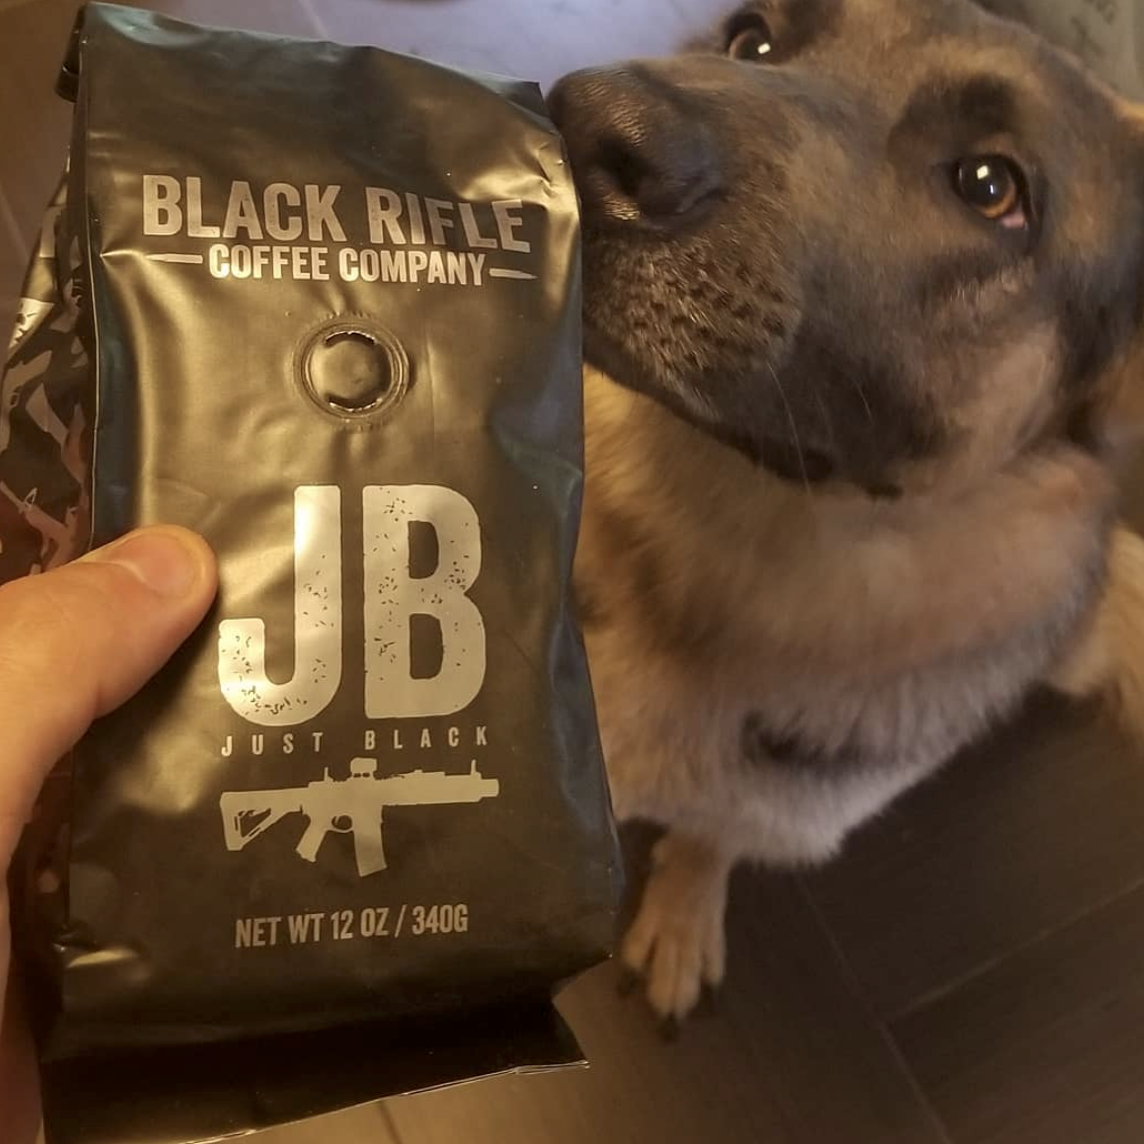 Pin on Black Rifle Coffee Customers